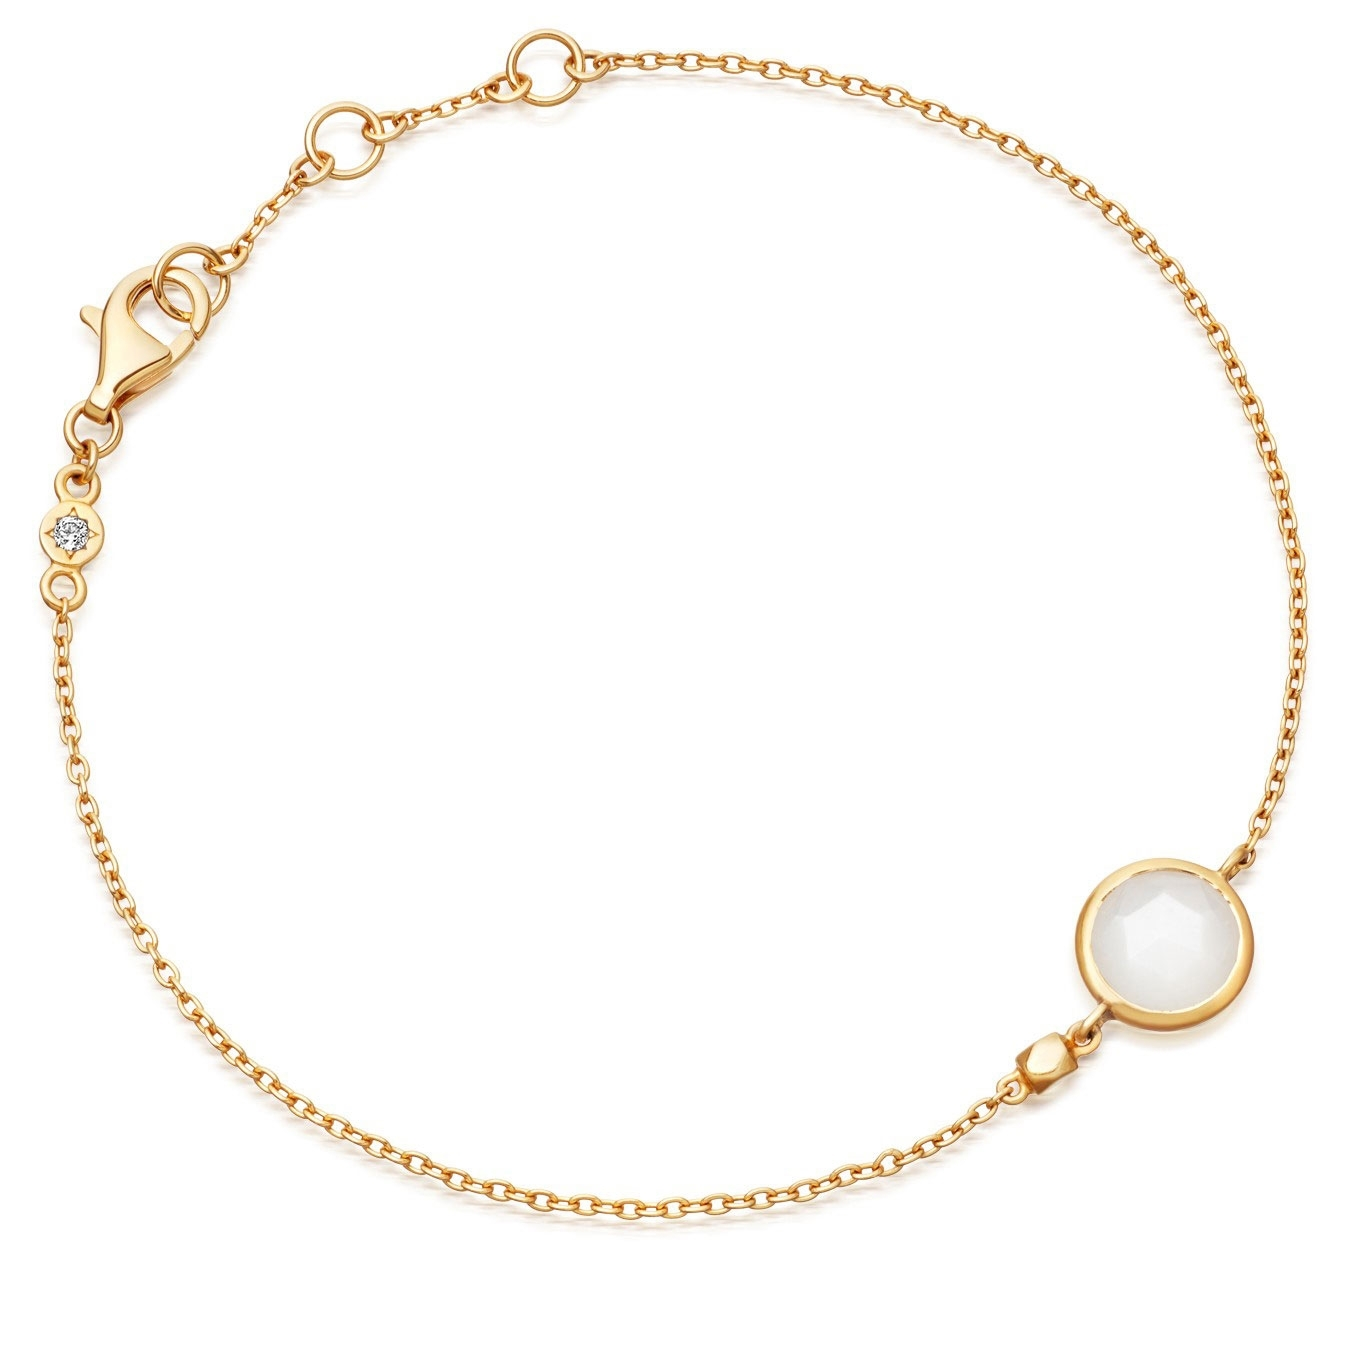 Mini Round Stilla Moonstone Bracelet